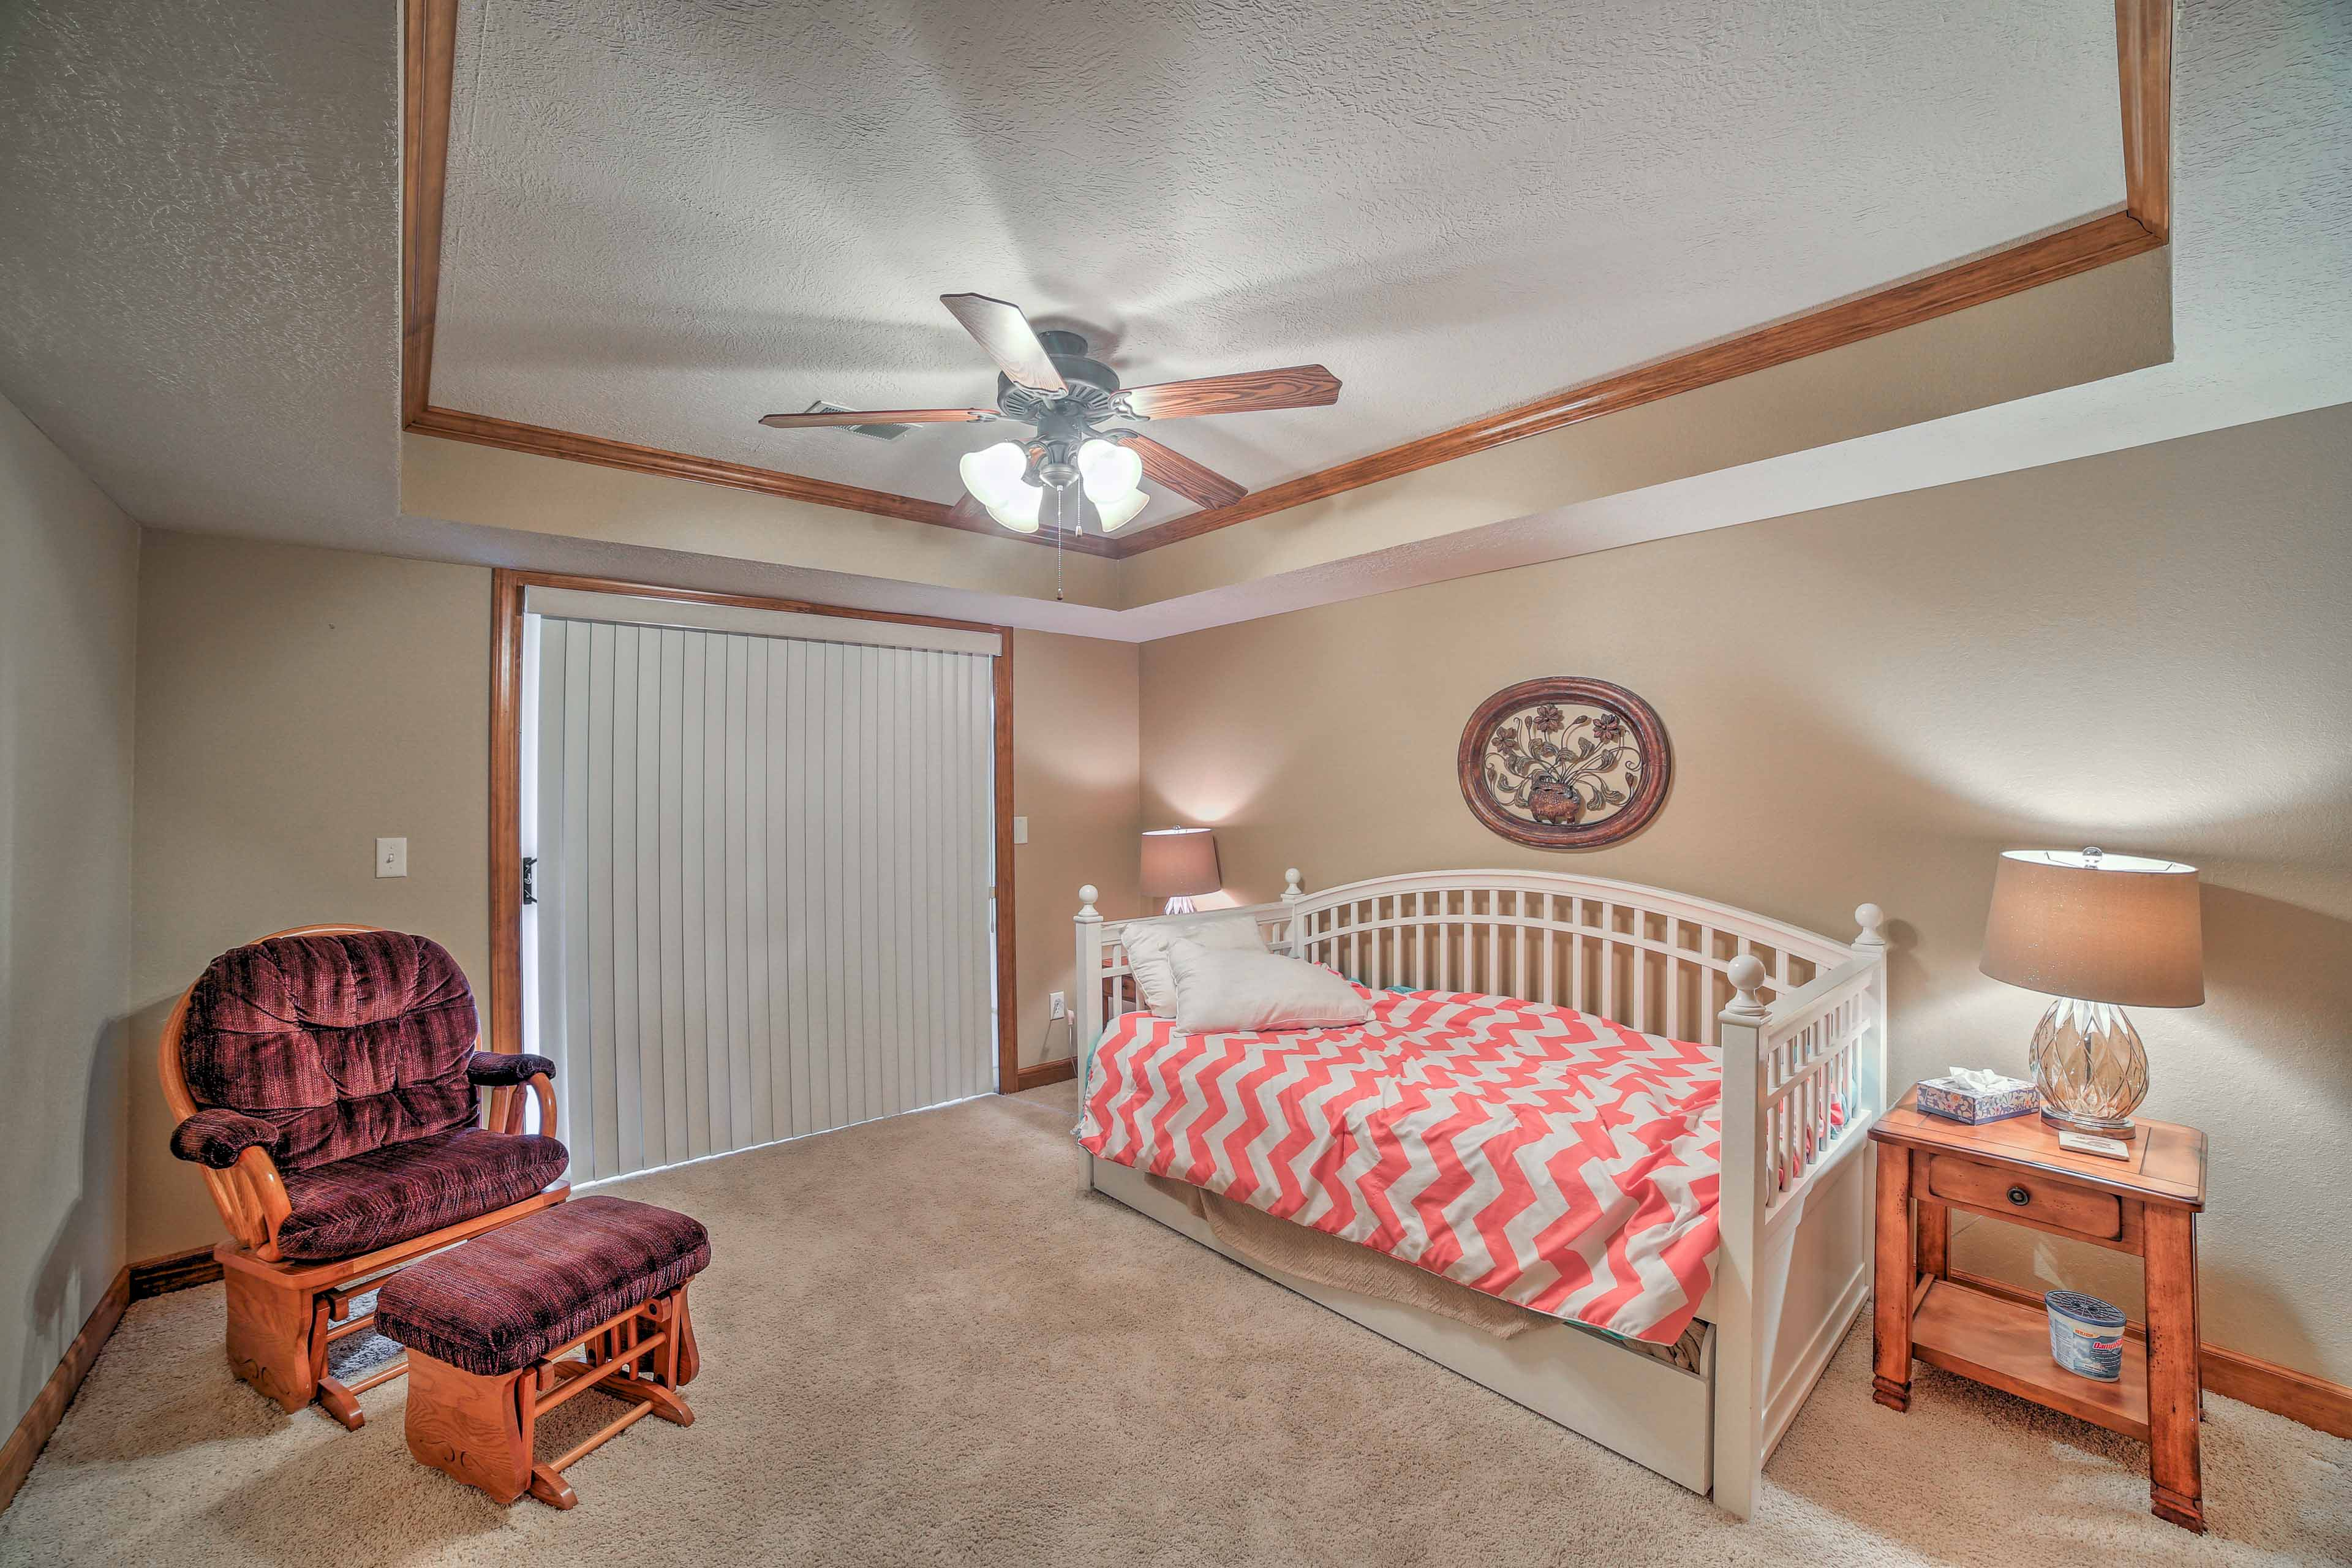 Glass doors lead out to the balcony in this bright room with a twin trundle bed.